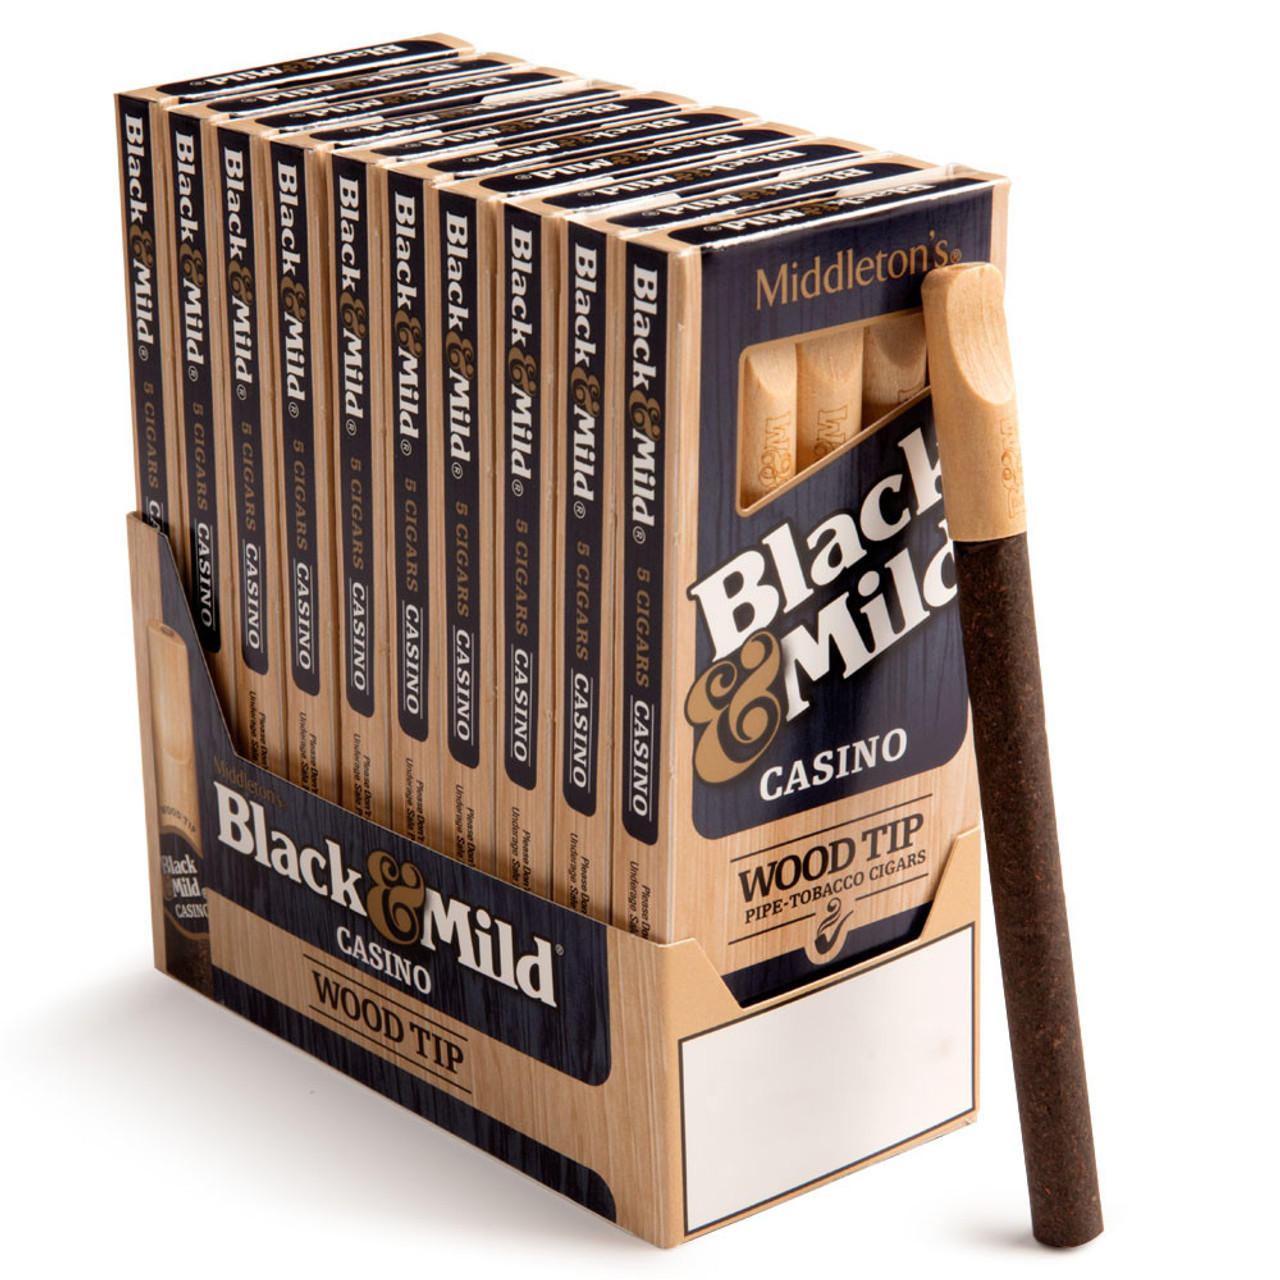 Black and Mild Wood Tip Casino Cigars (10 packs of 5) - Natural